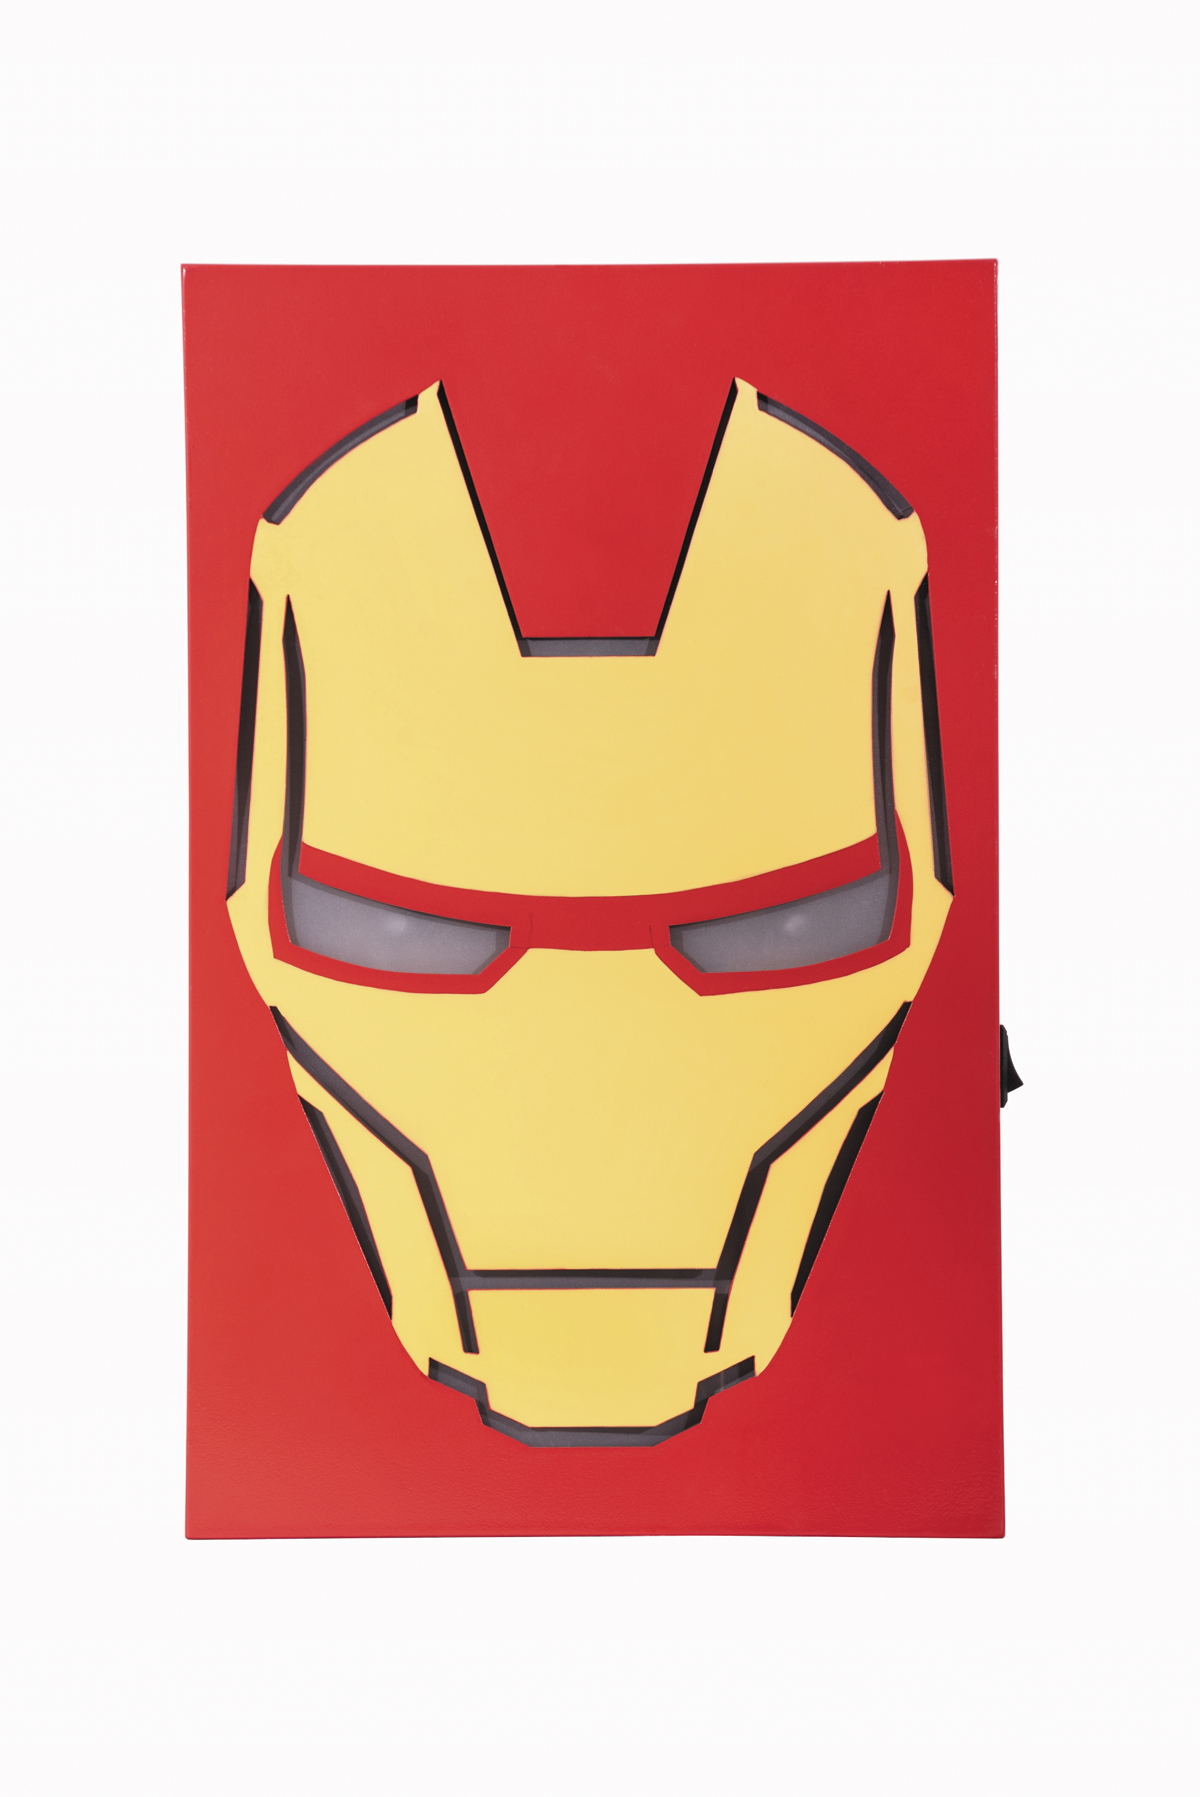 SEP168739 - MARVEL IRON MAN LED LIGHT UP BOX ART - Previews World